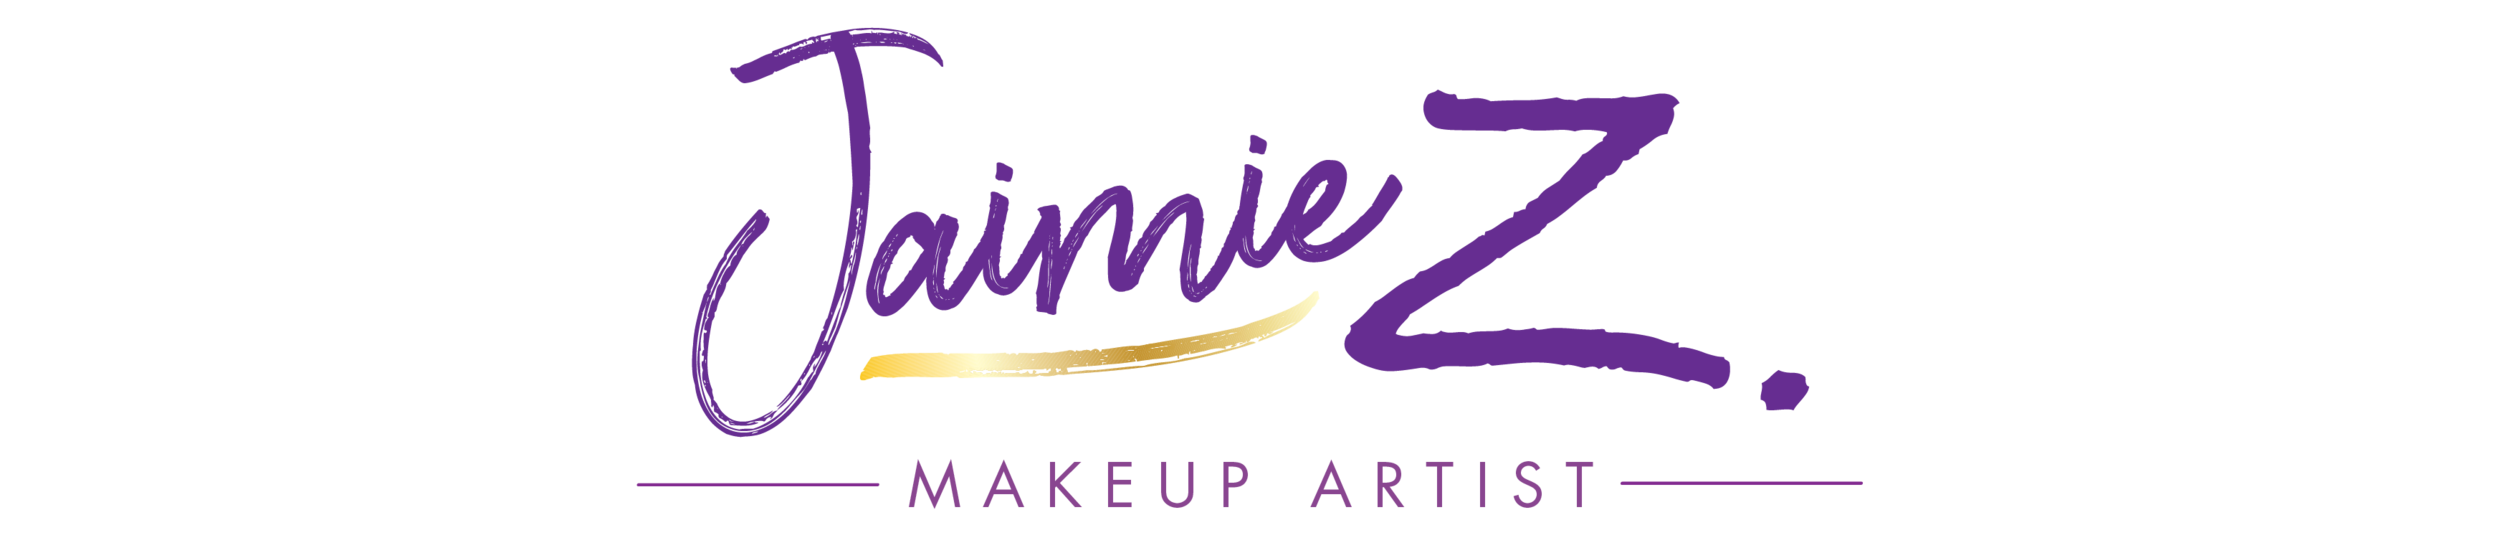 Jaimie Z Logo - Home Logo Small-13.png